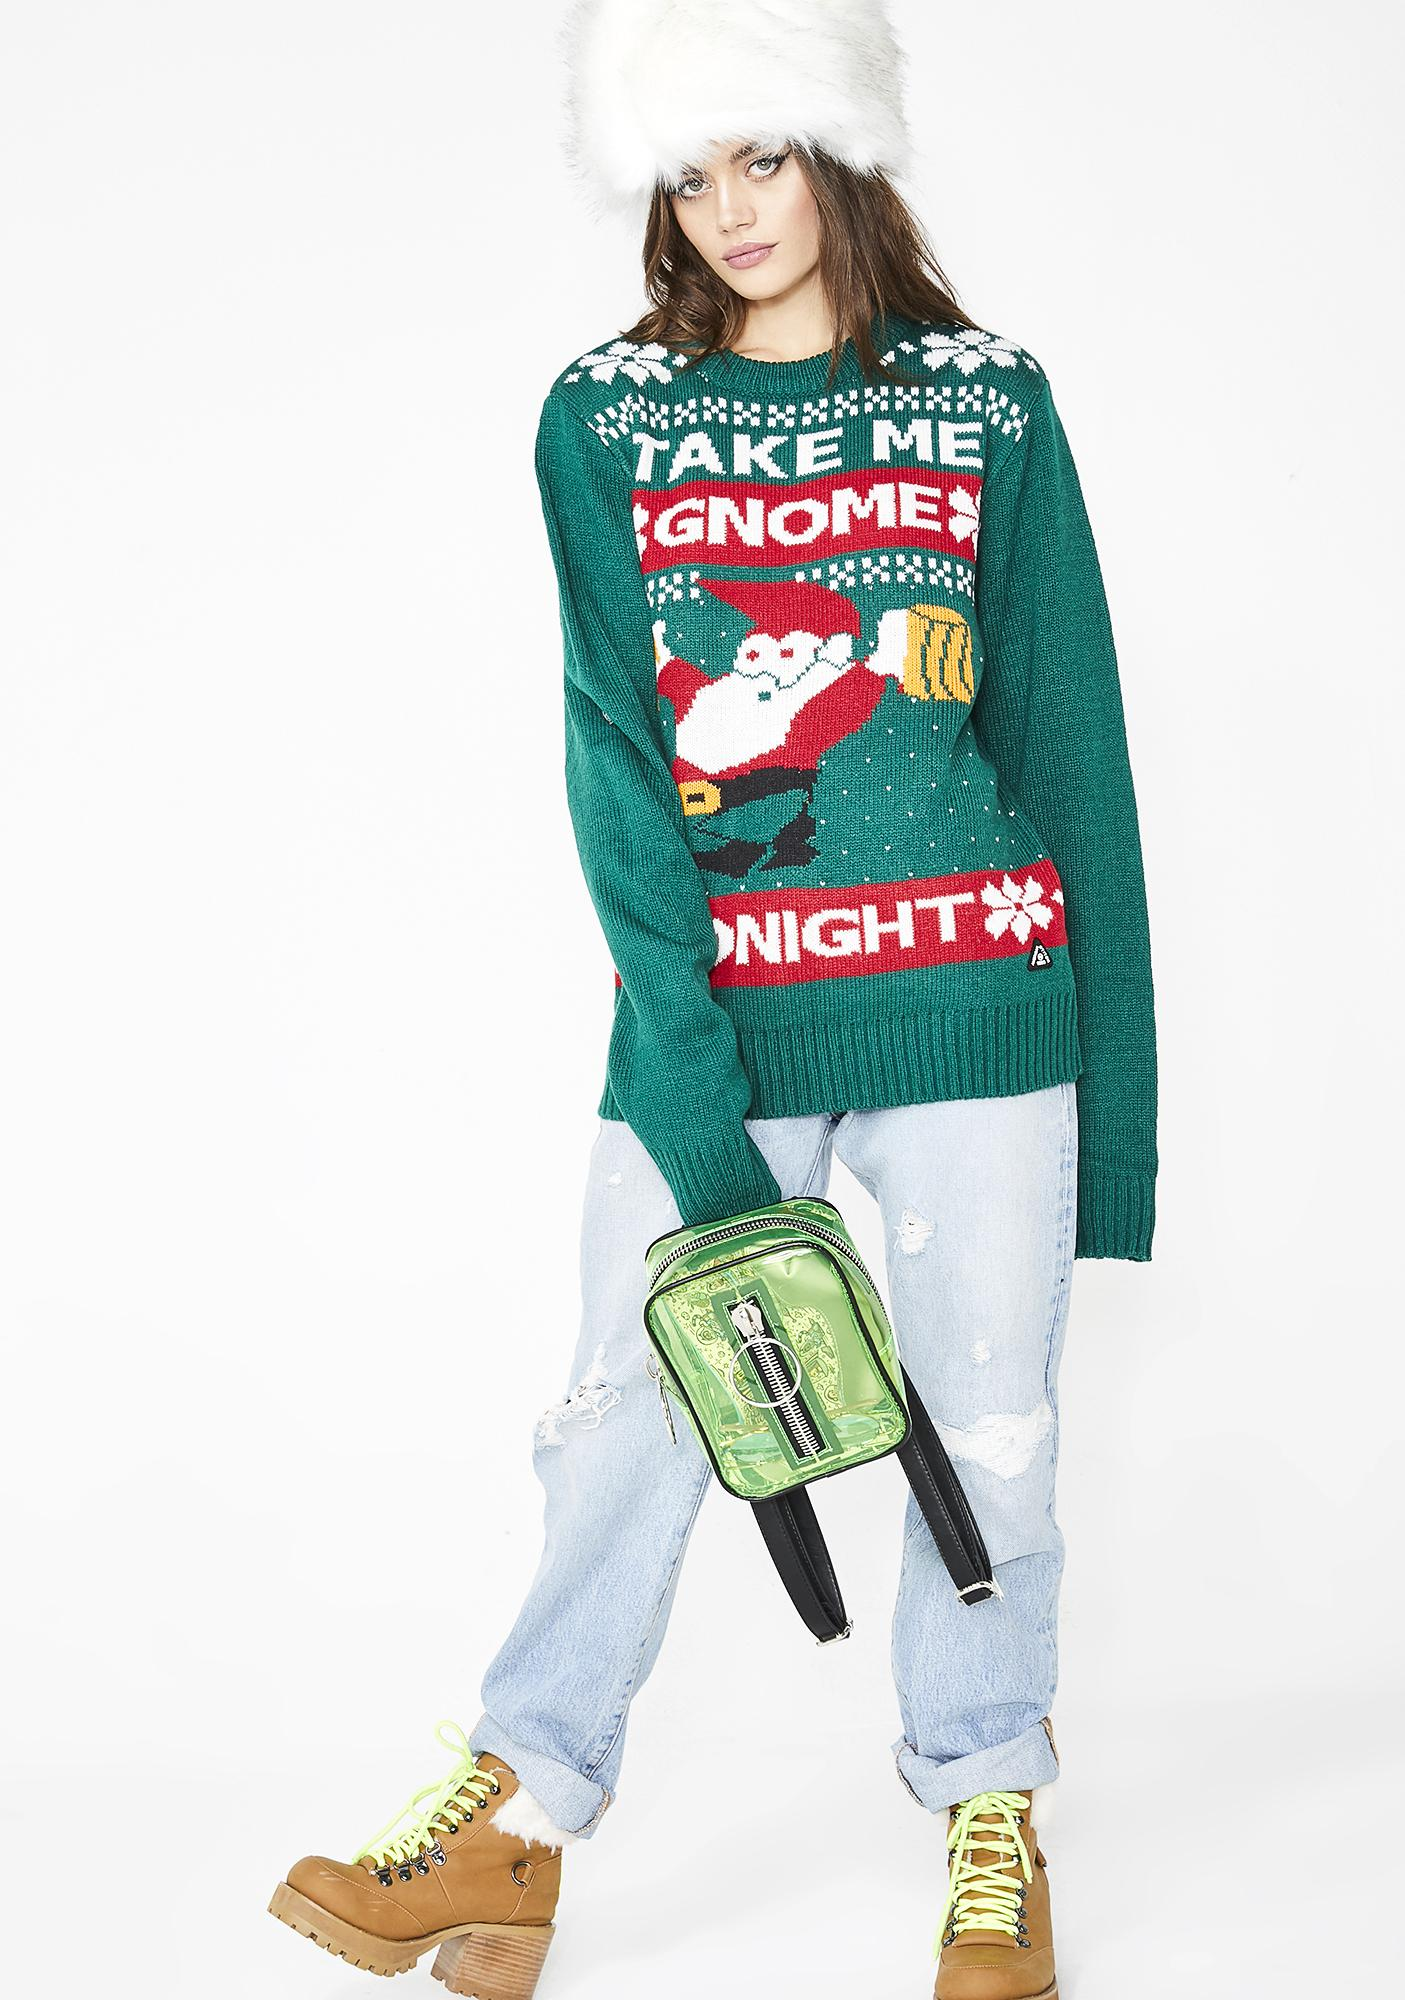 Take Me Gnome Tonight Sweater